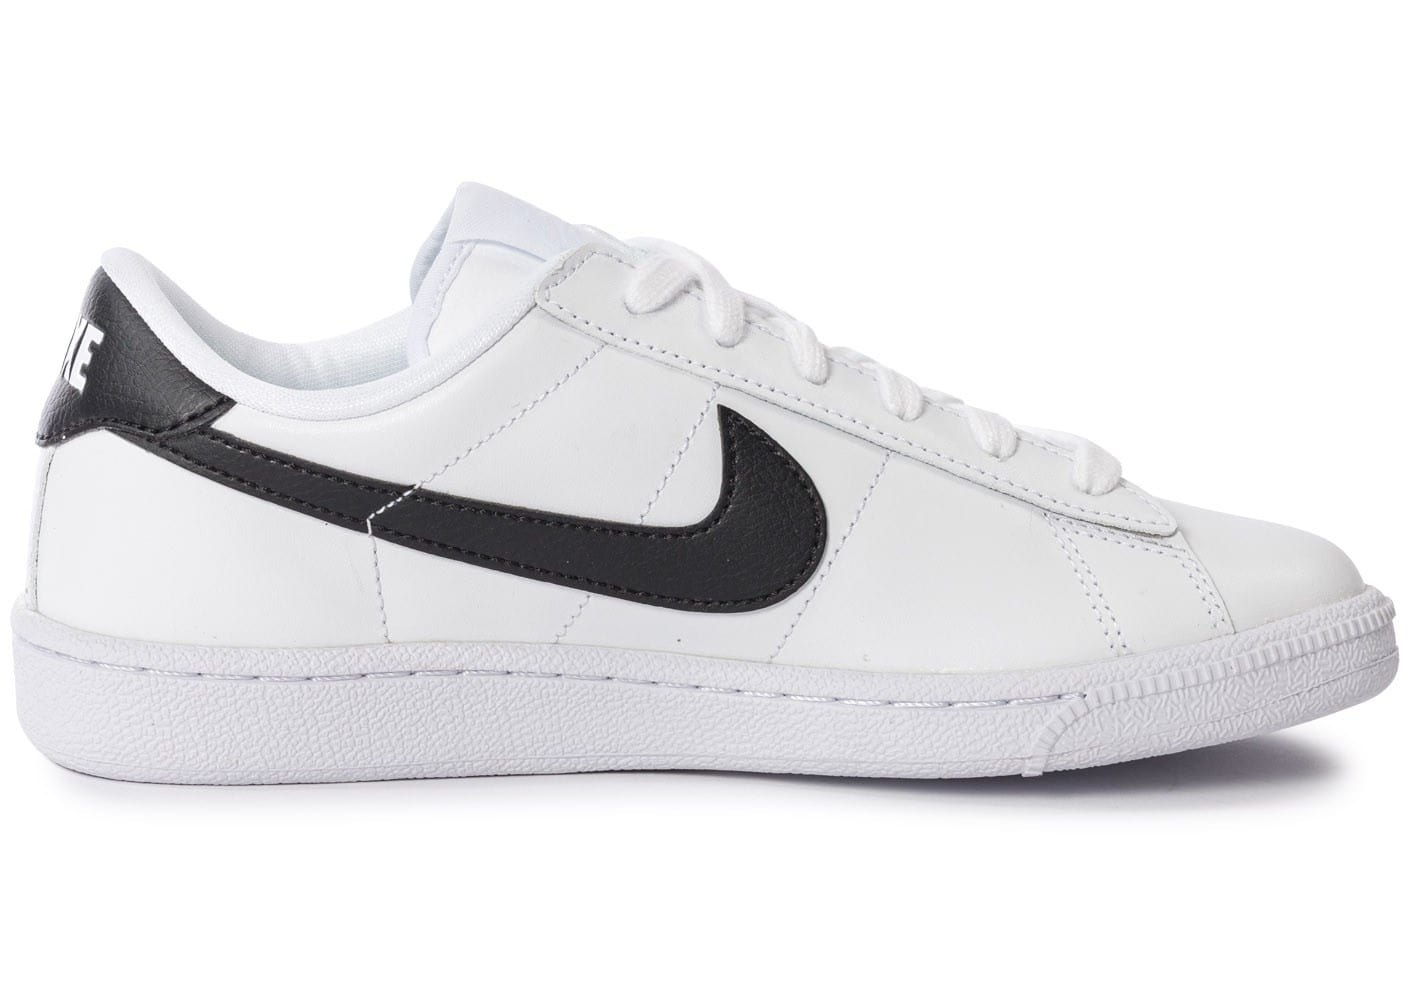 nike tennis classic blanche et noire chaussures chaussures chausport. Black Bedroom Furniture Sets. Home Design Ideas